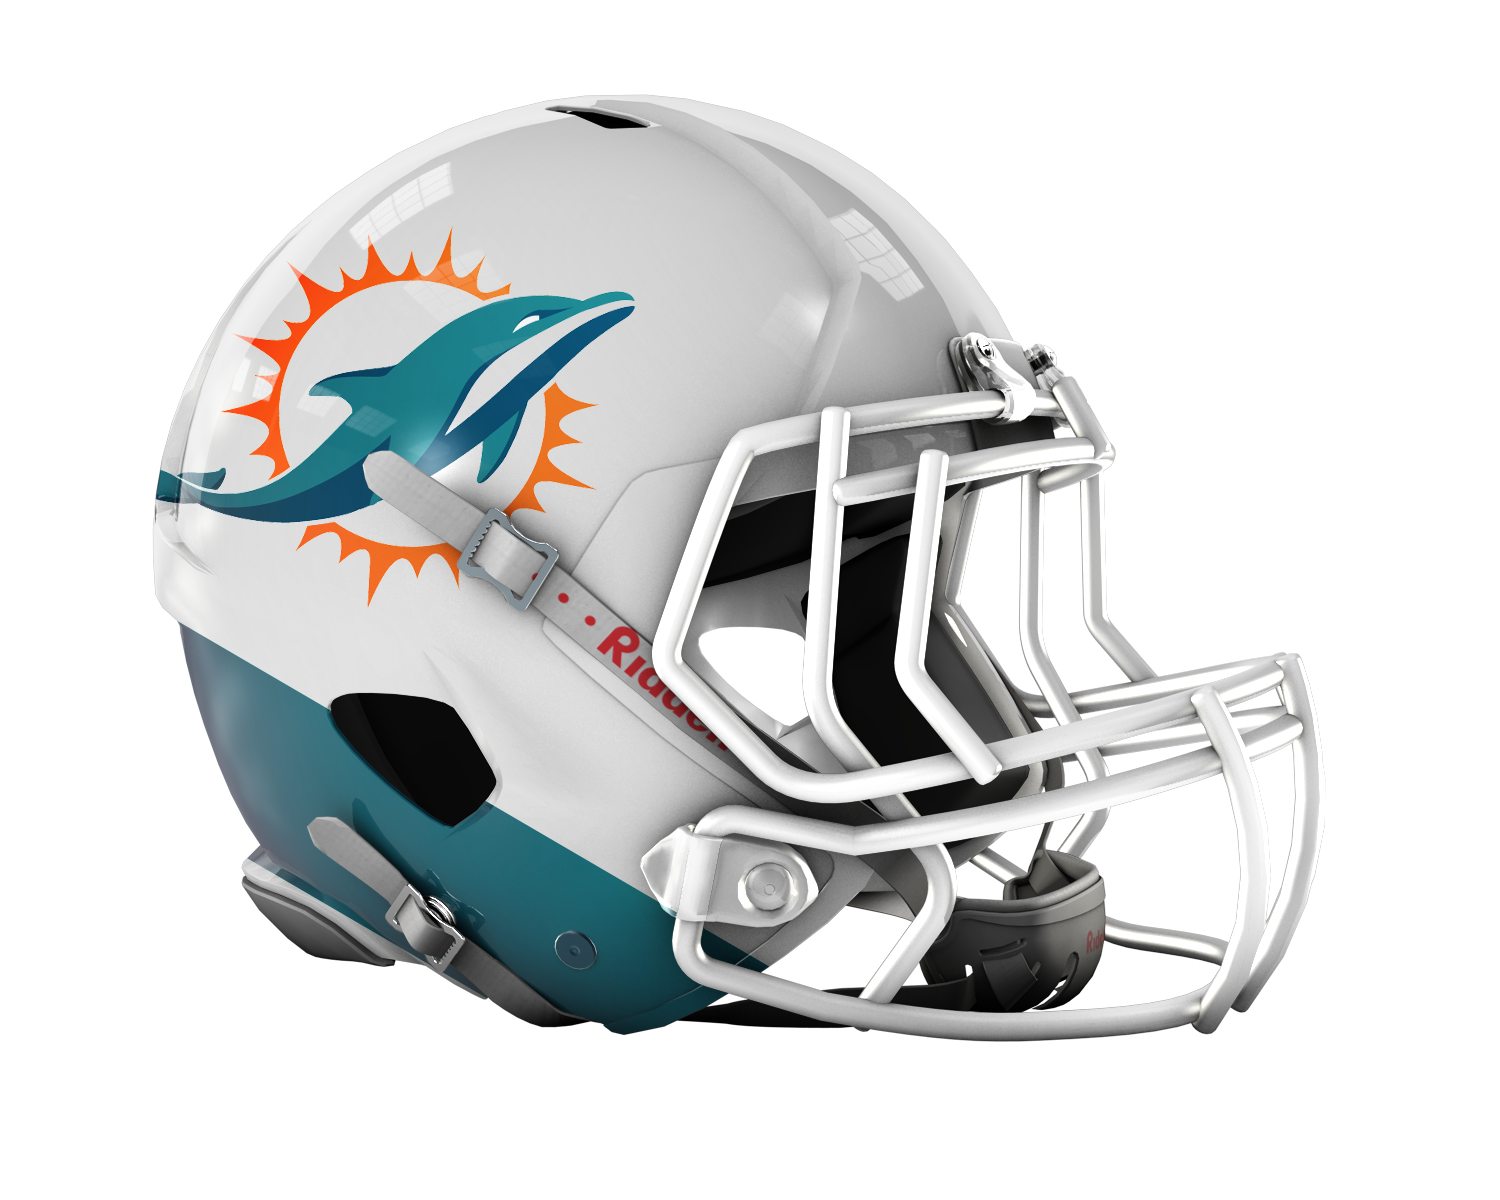 graphic freeuse Vector dolphin helmet. Miami dolphins nfl football